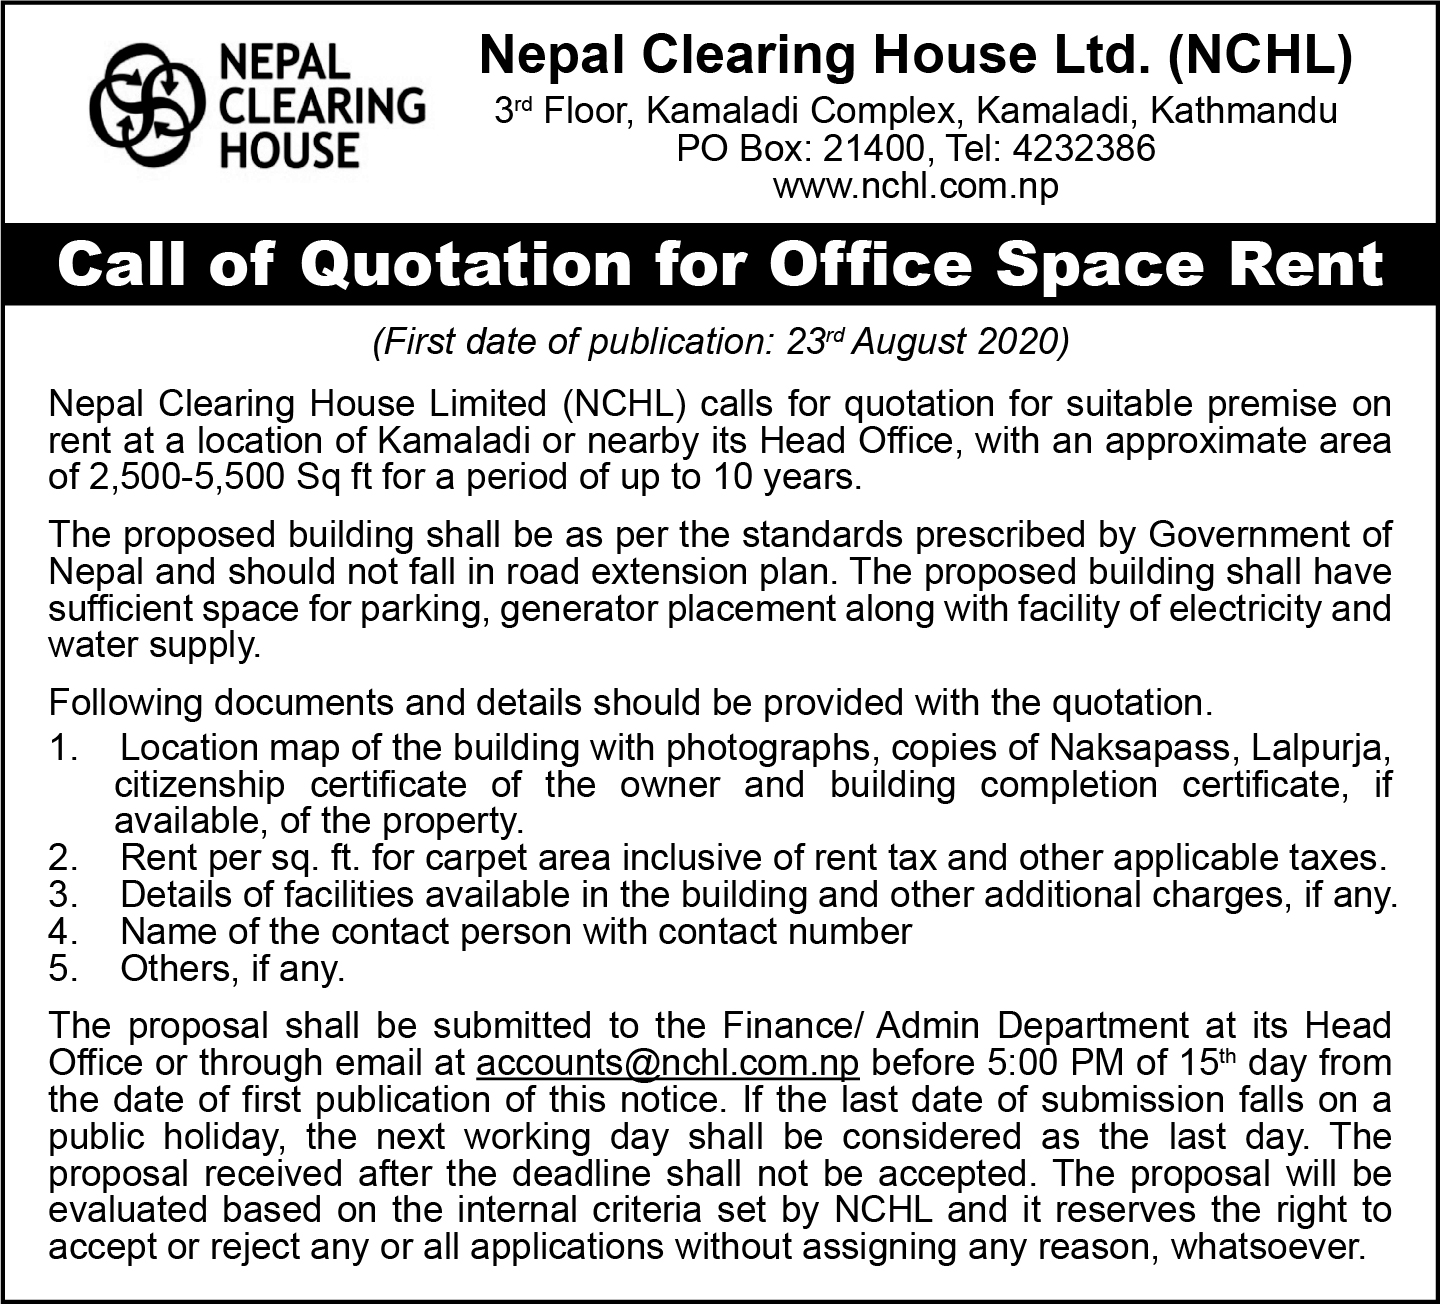 Call of Quotation for Office Space Rent [Expired]